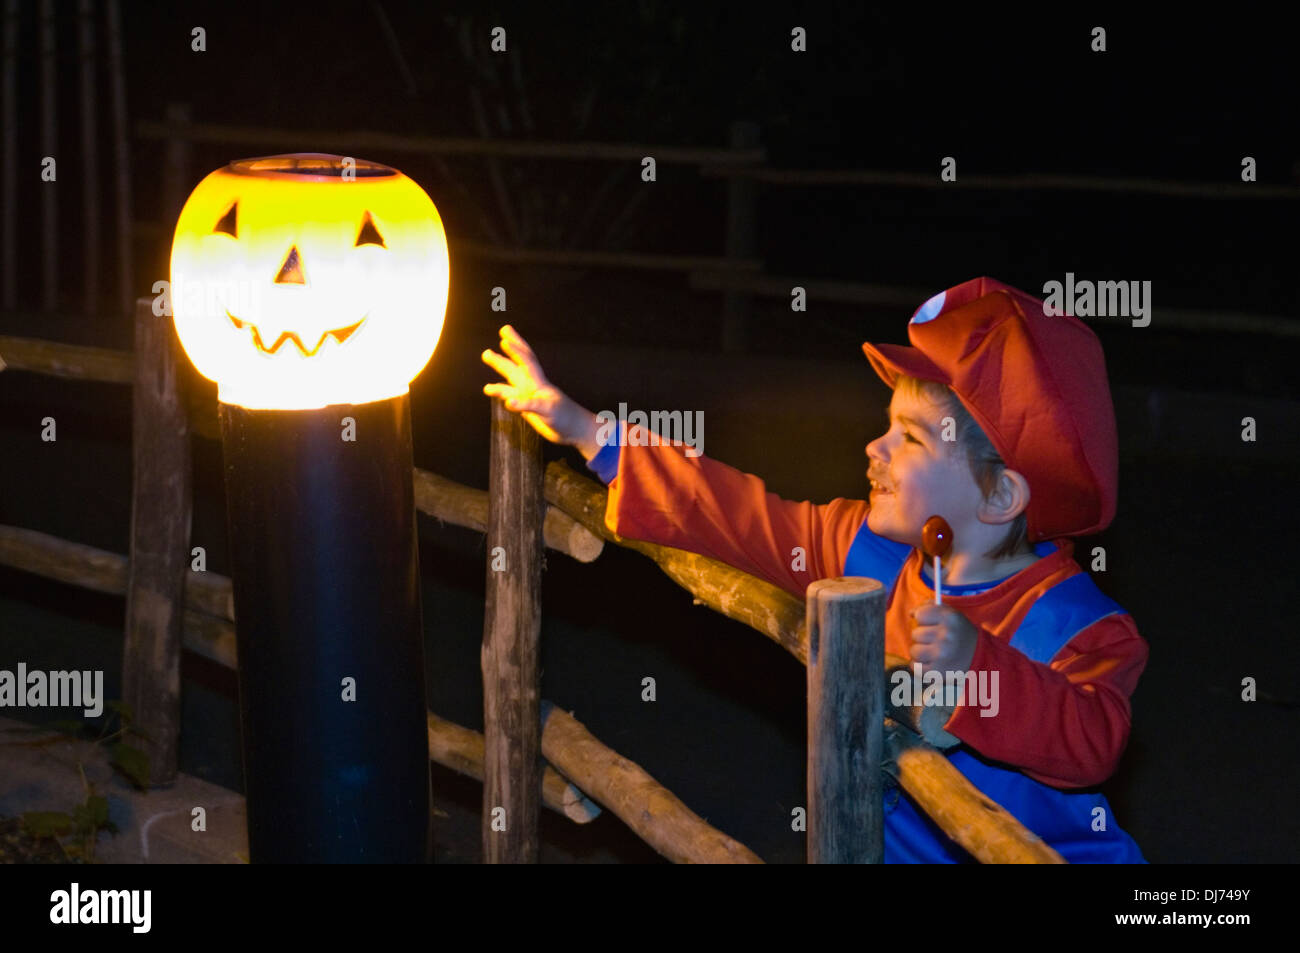 Toddler Dressed Up as Mario Reaches toward Jack-O-Lantern on Lamp ...